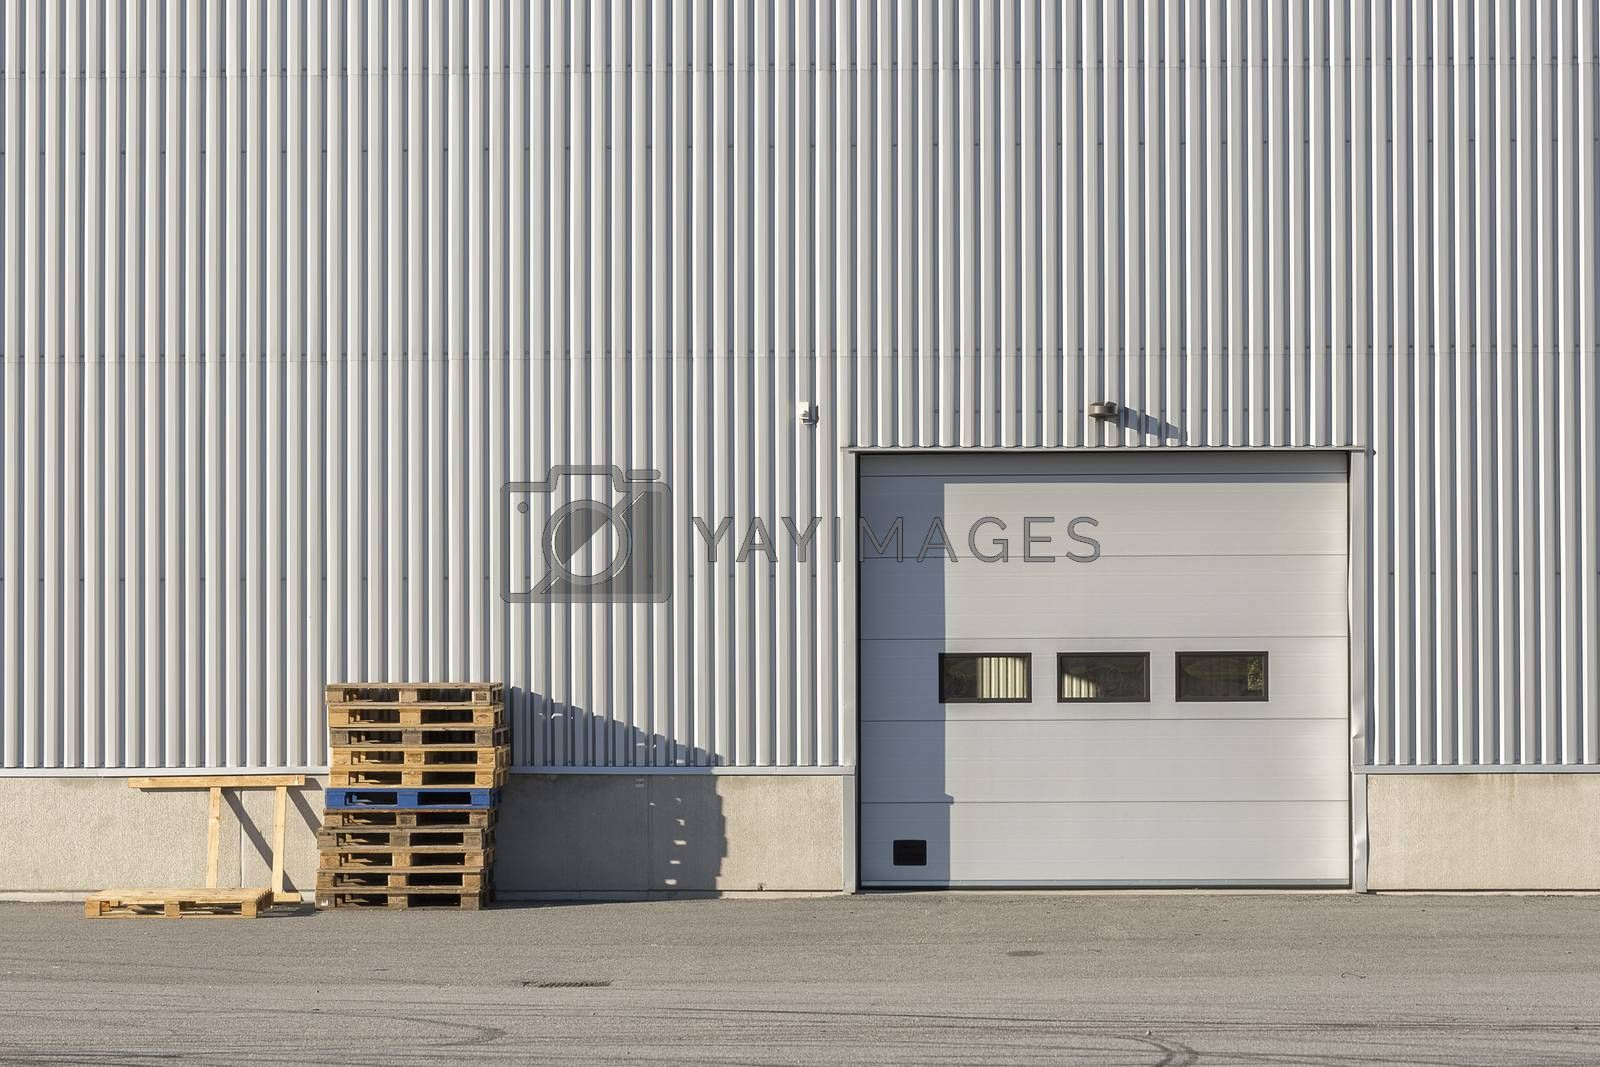 Royalty free image of Industrial Building with Garage Door by Emmoth